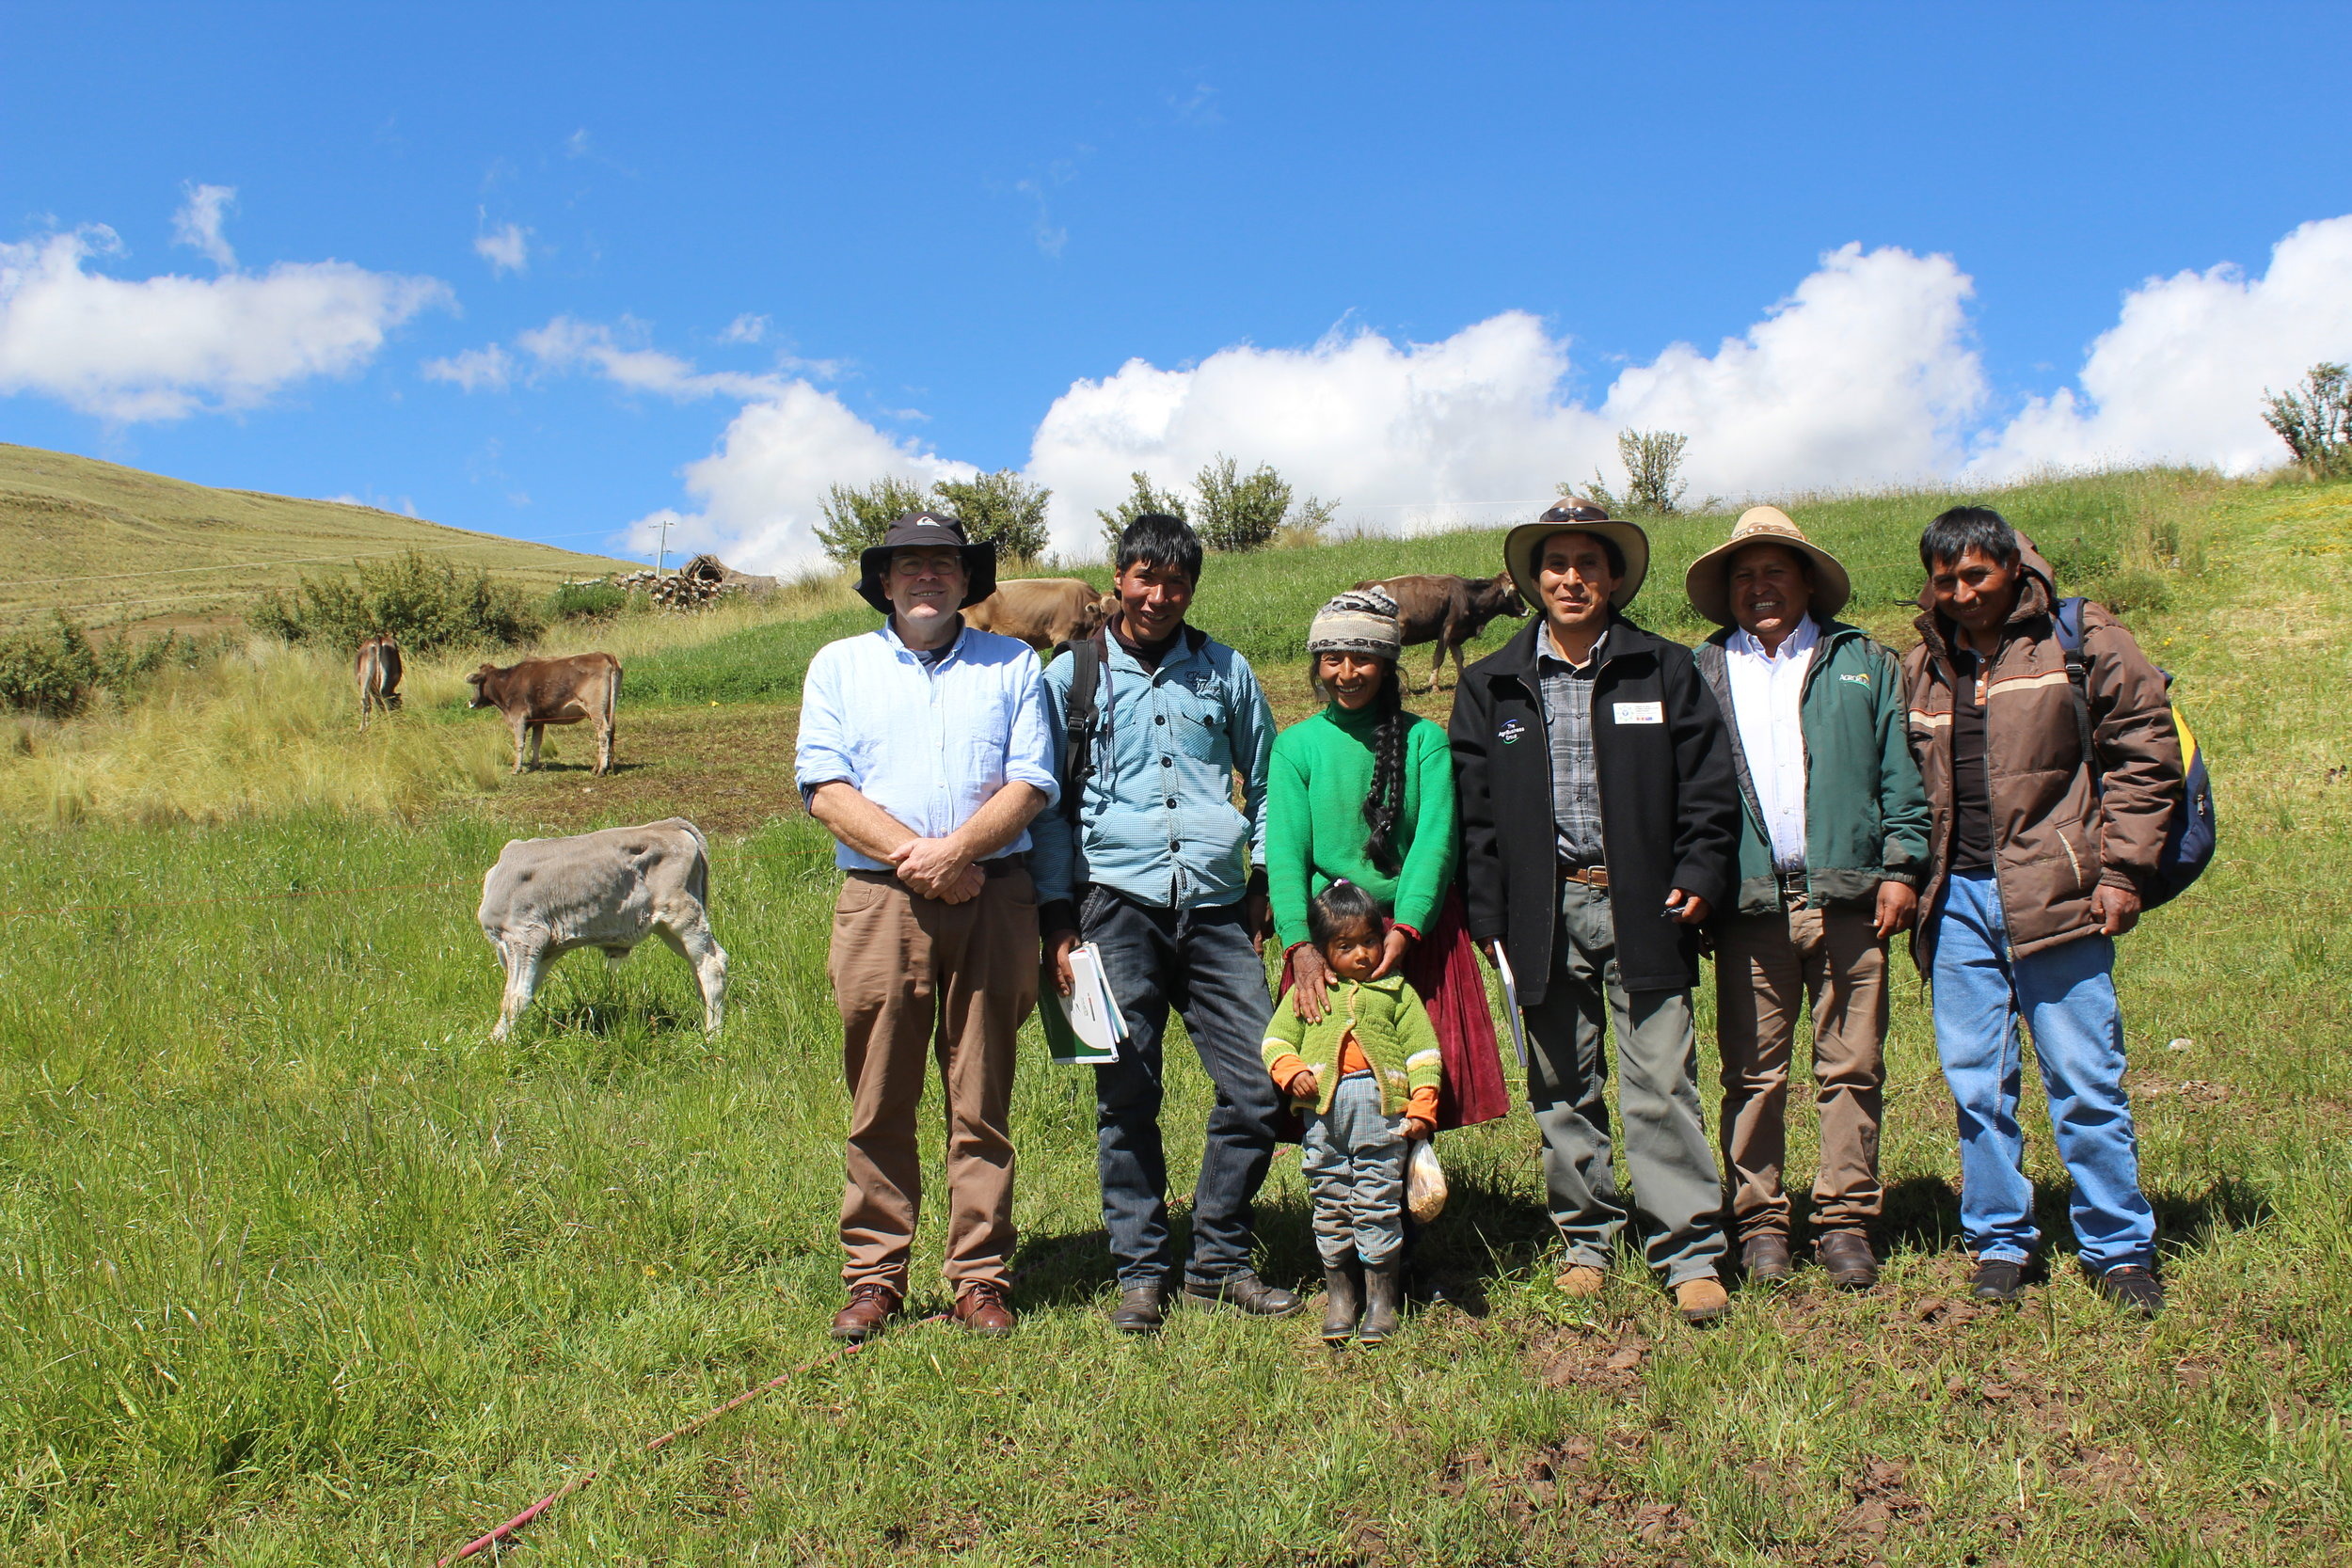 Wilfredo Conde and family, applying the good dairy farming practices